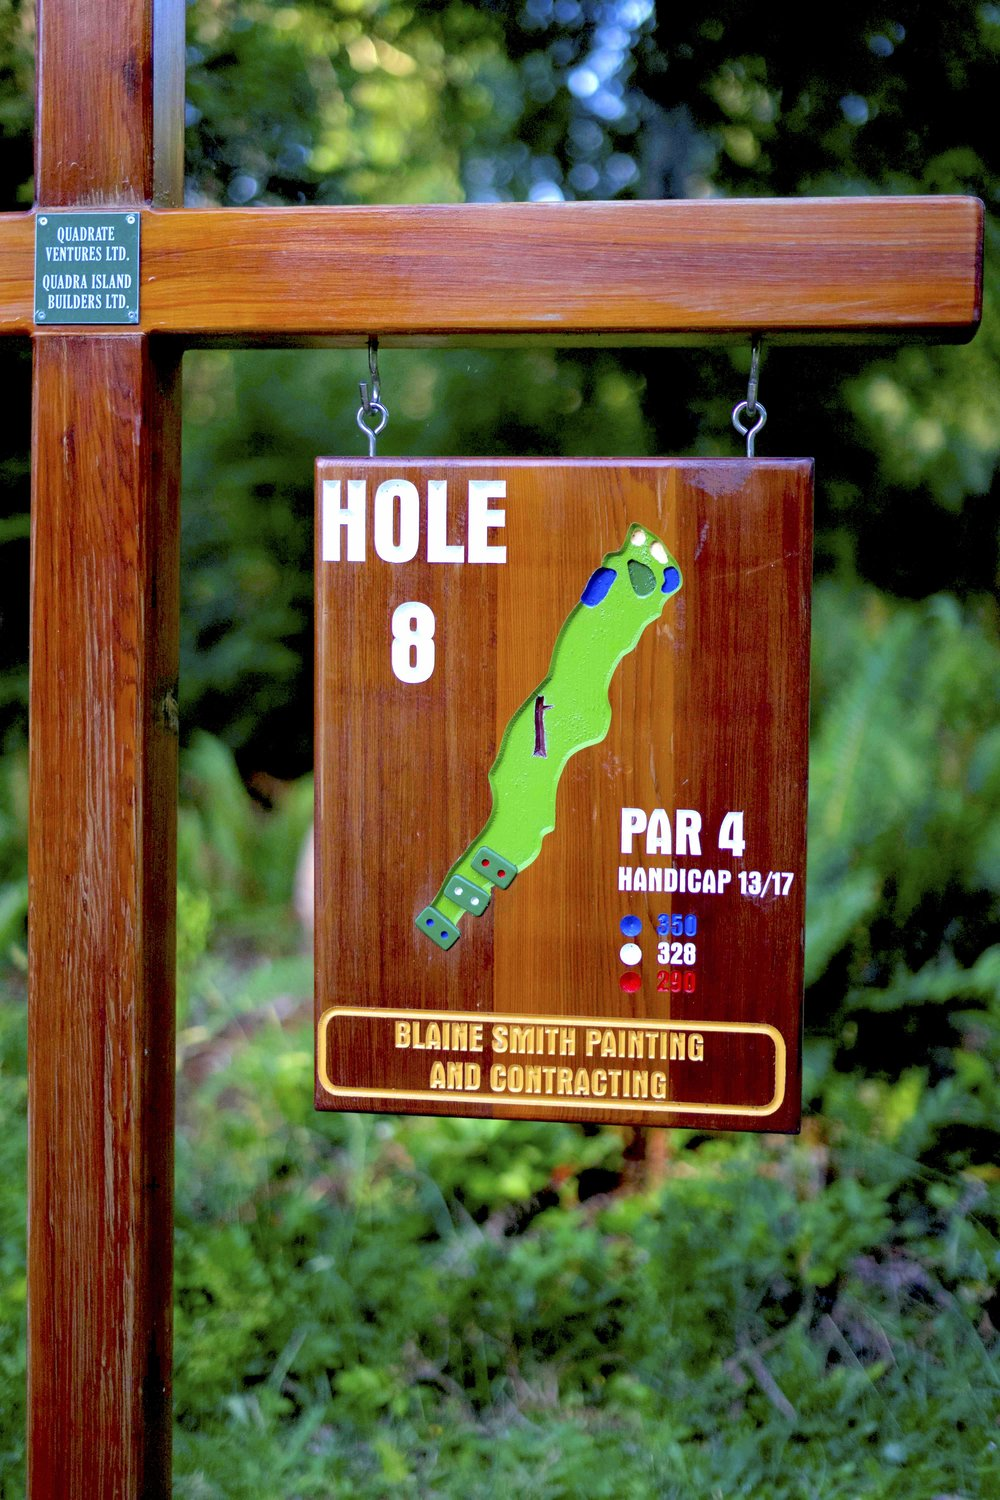 QuadraGolf_Hole8_sign_DSC00431.jpg